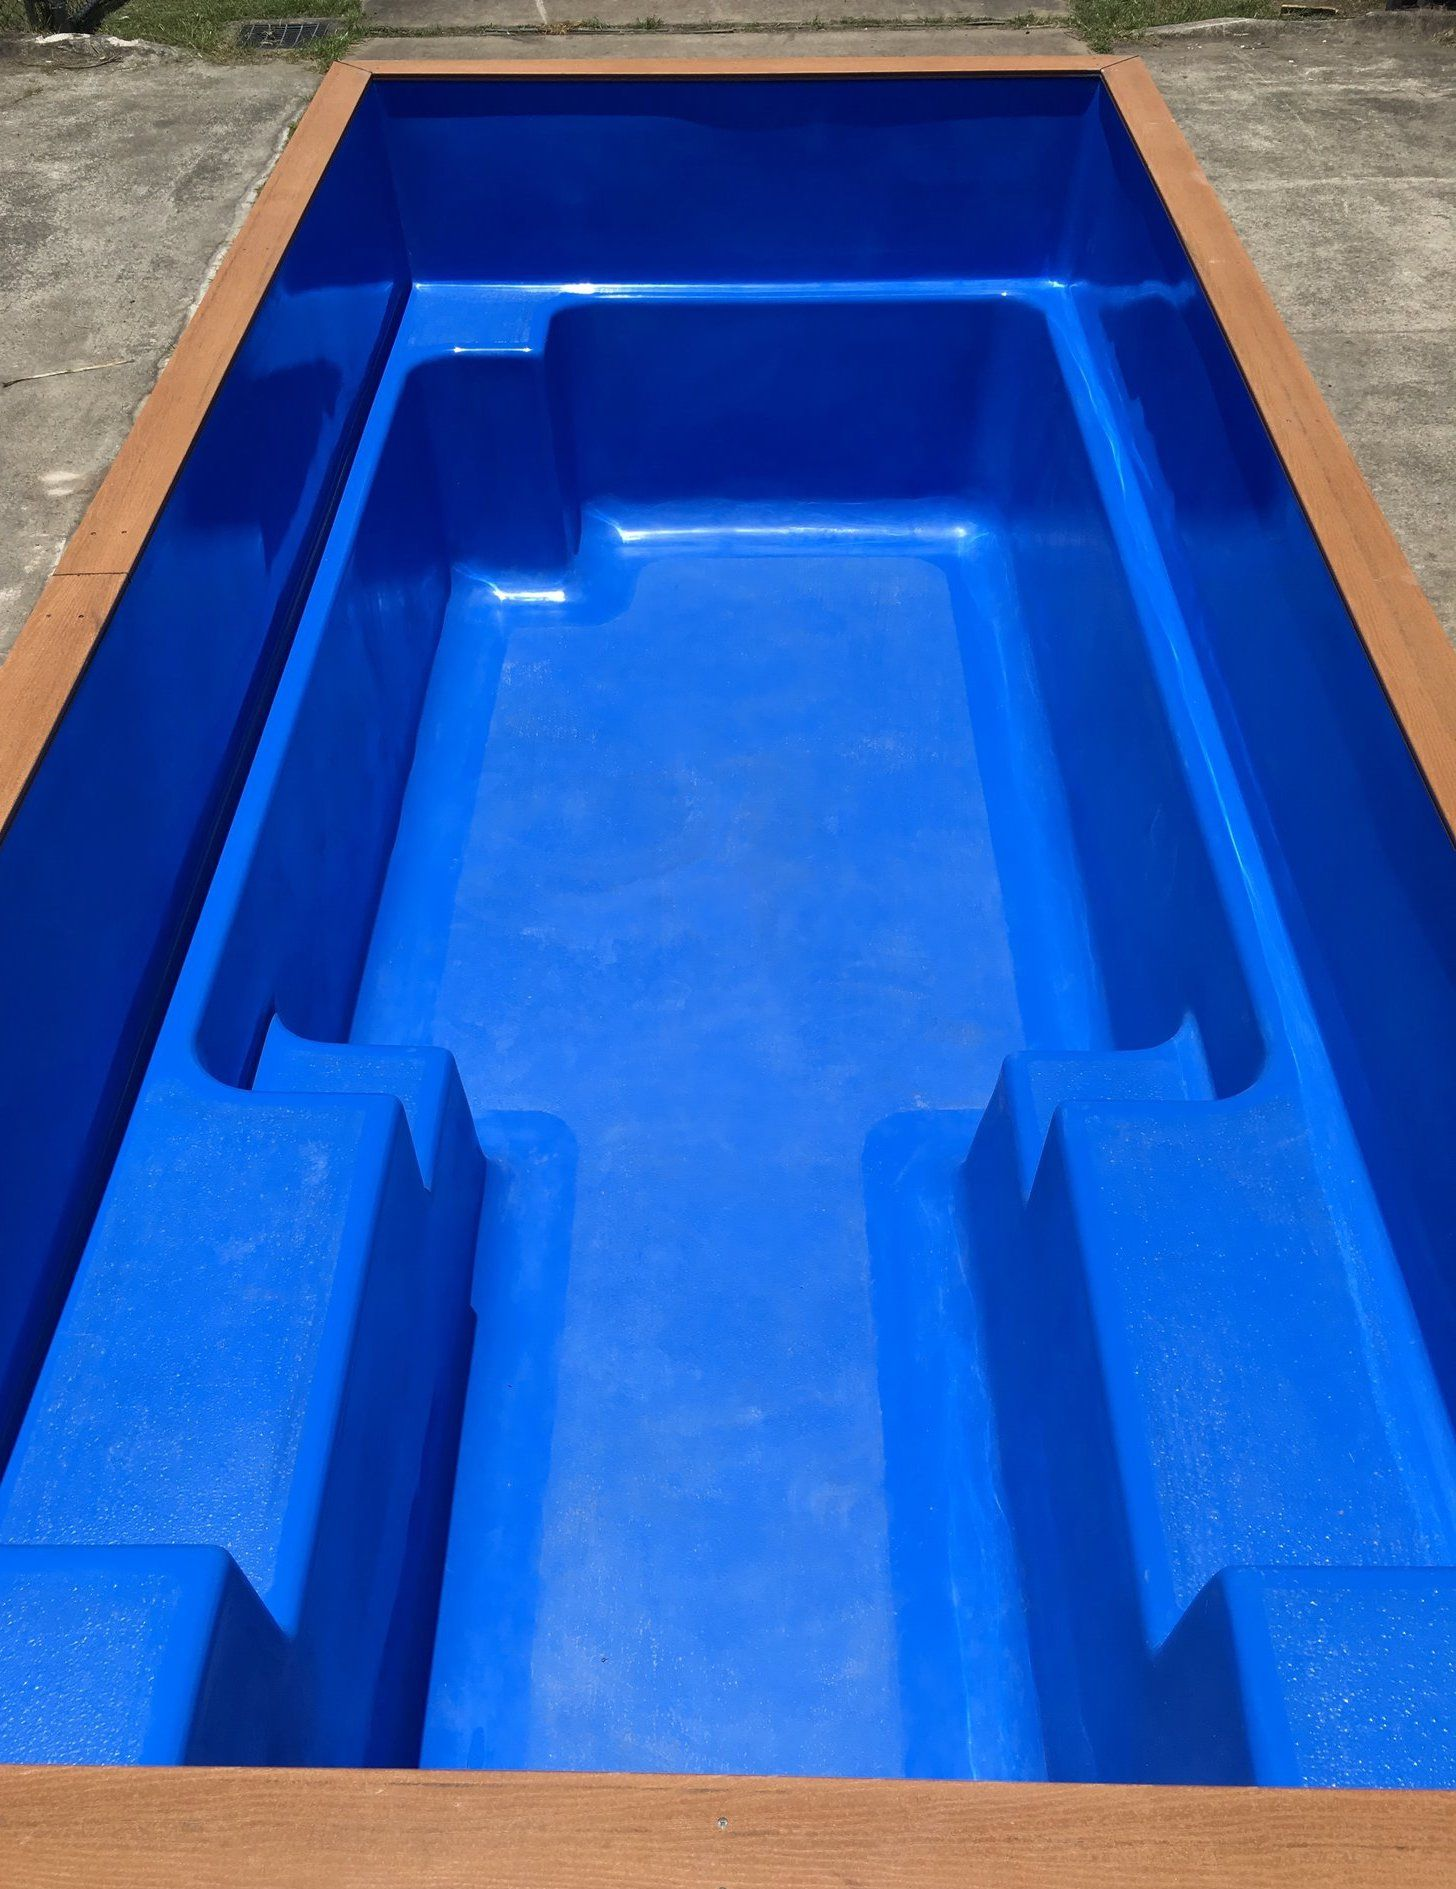 Converting A Shipping Container Into A Swimming Pool Seems Like A Cheap Way Of Keepi Shipping Container Swimming Pool Diy Swimming Pool Shipping Container Pool